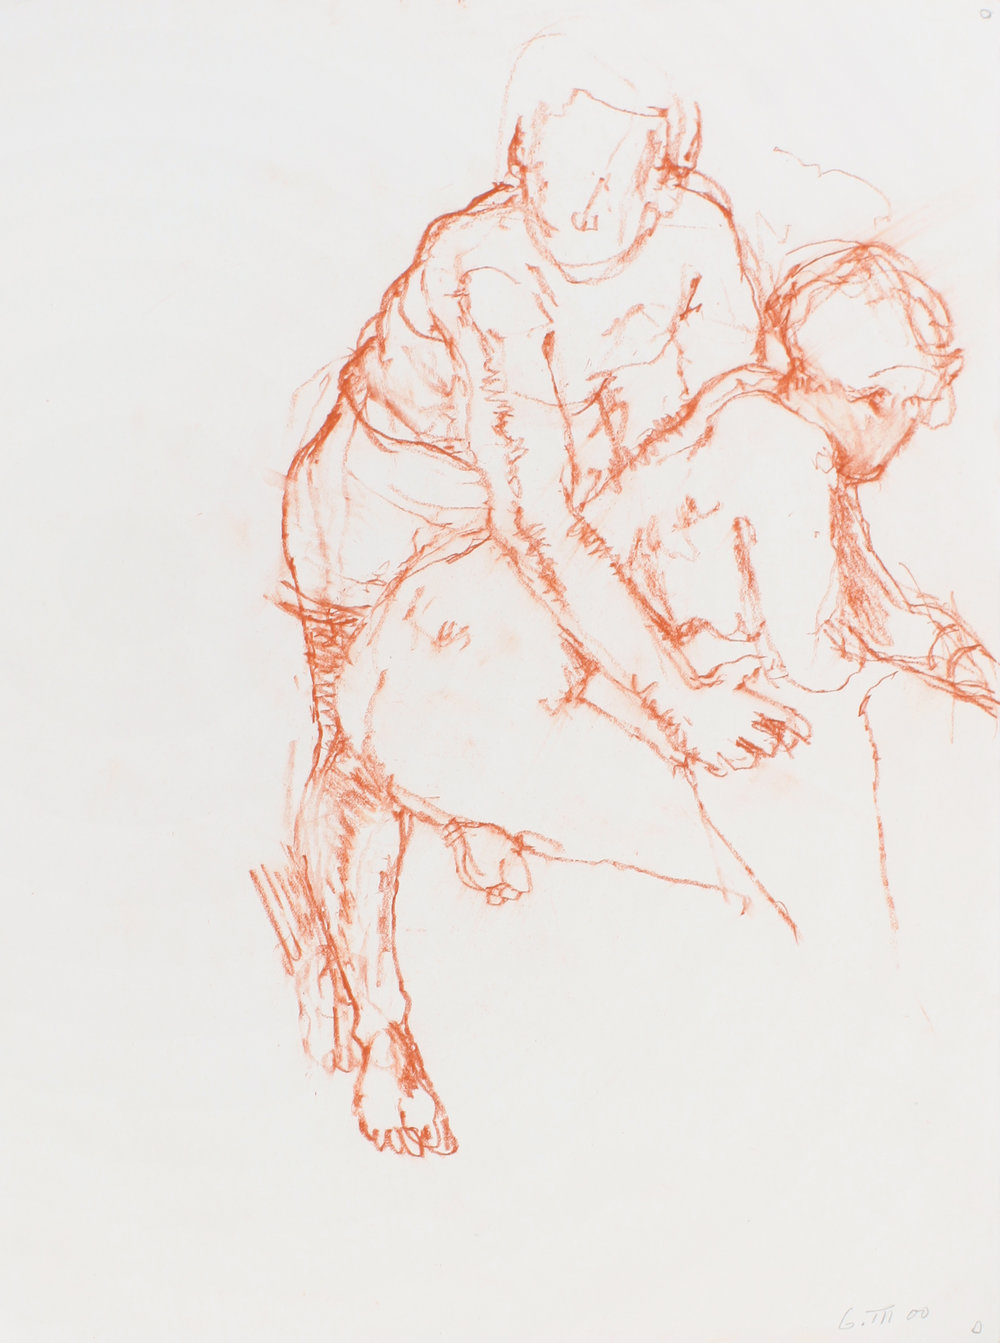 Two Nudes Clasping each Other